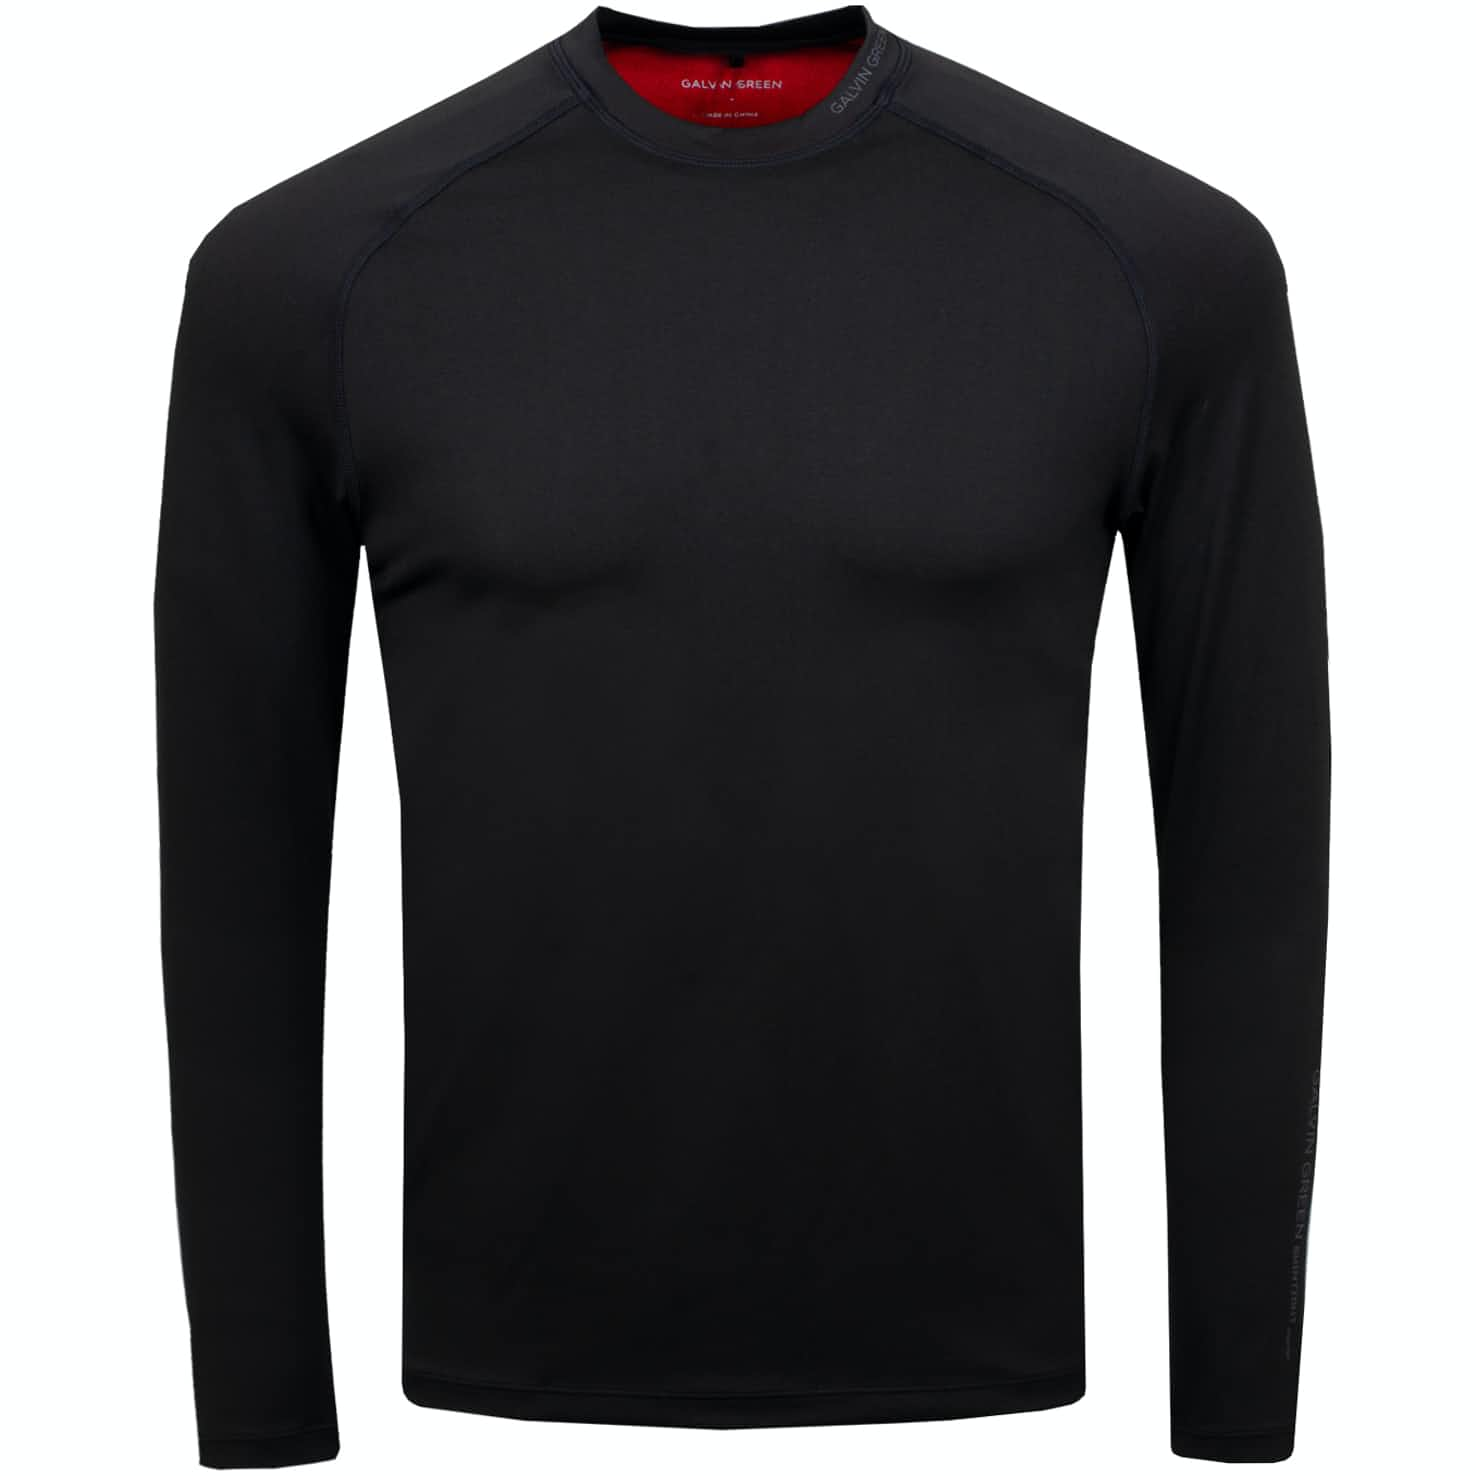 Elmo Thermal LS Black - 2020